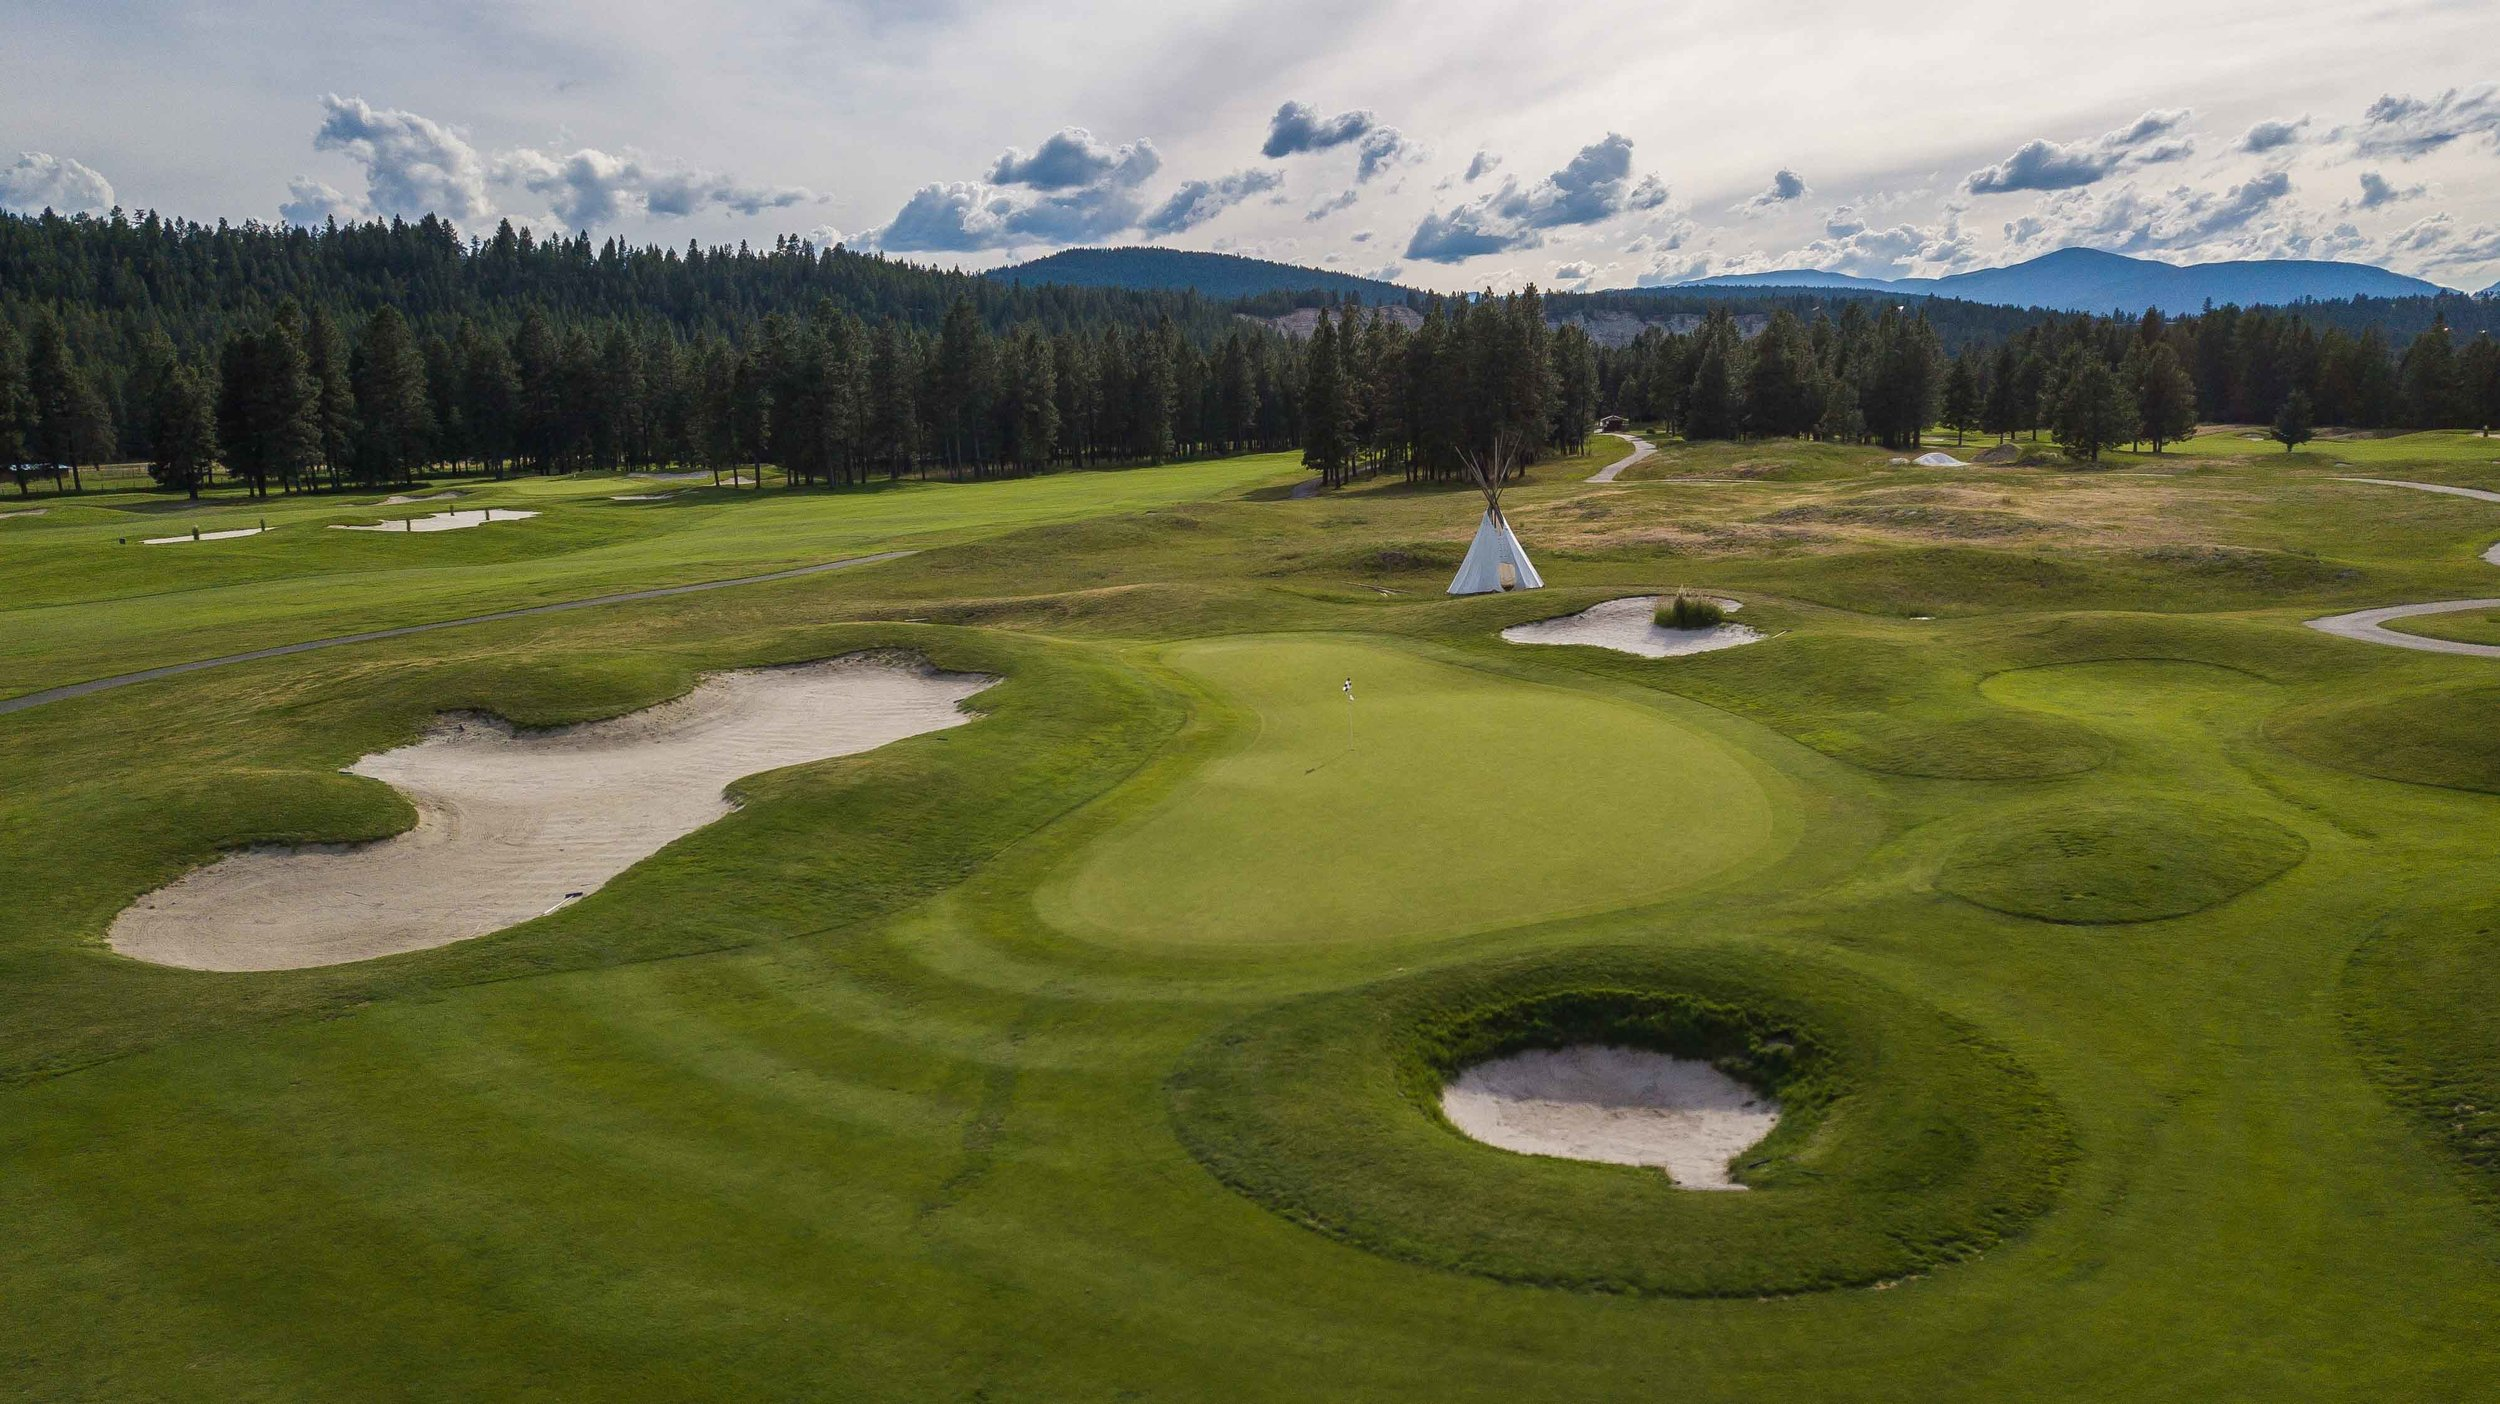 The 17th hole features a golf teepee behind the green.